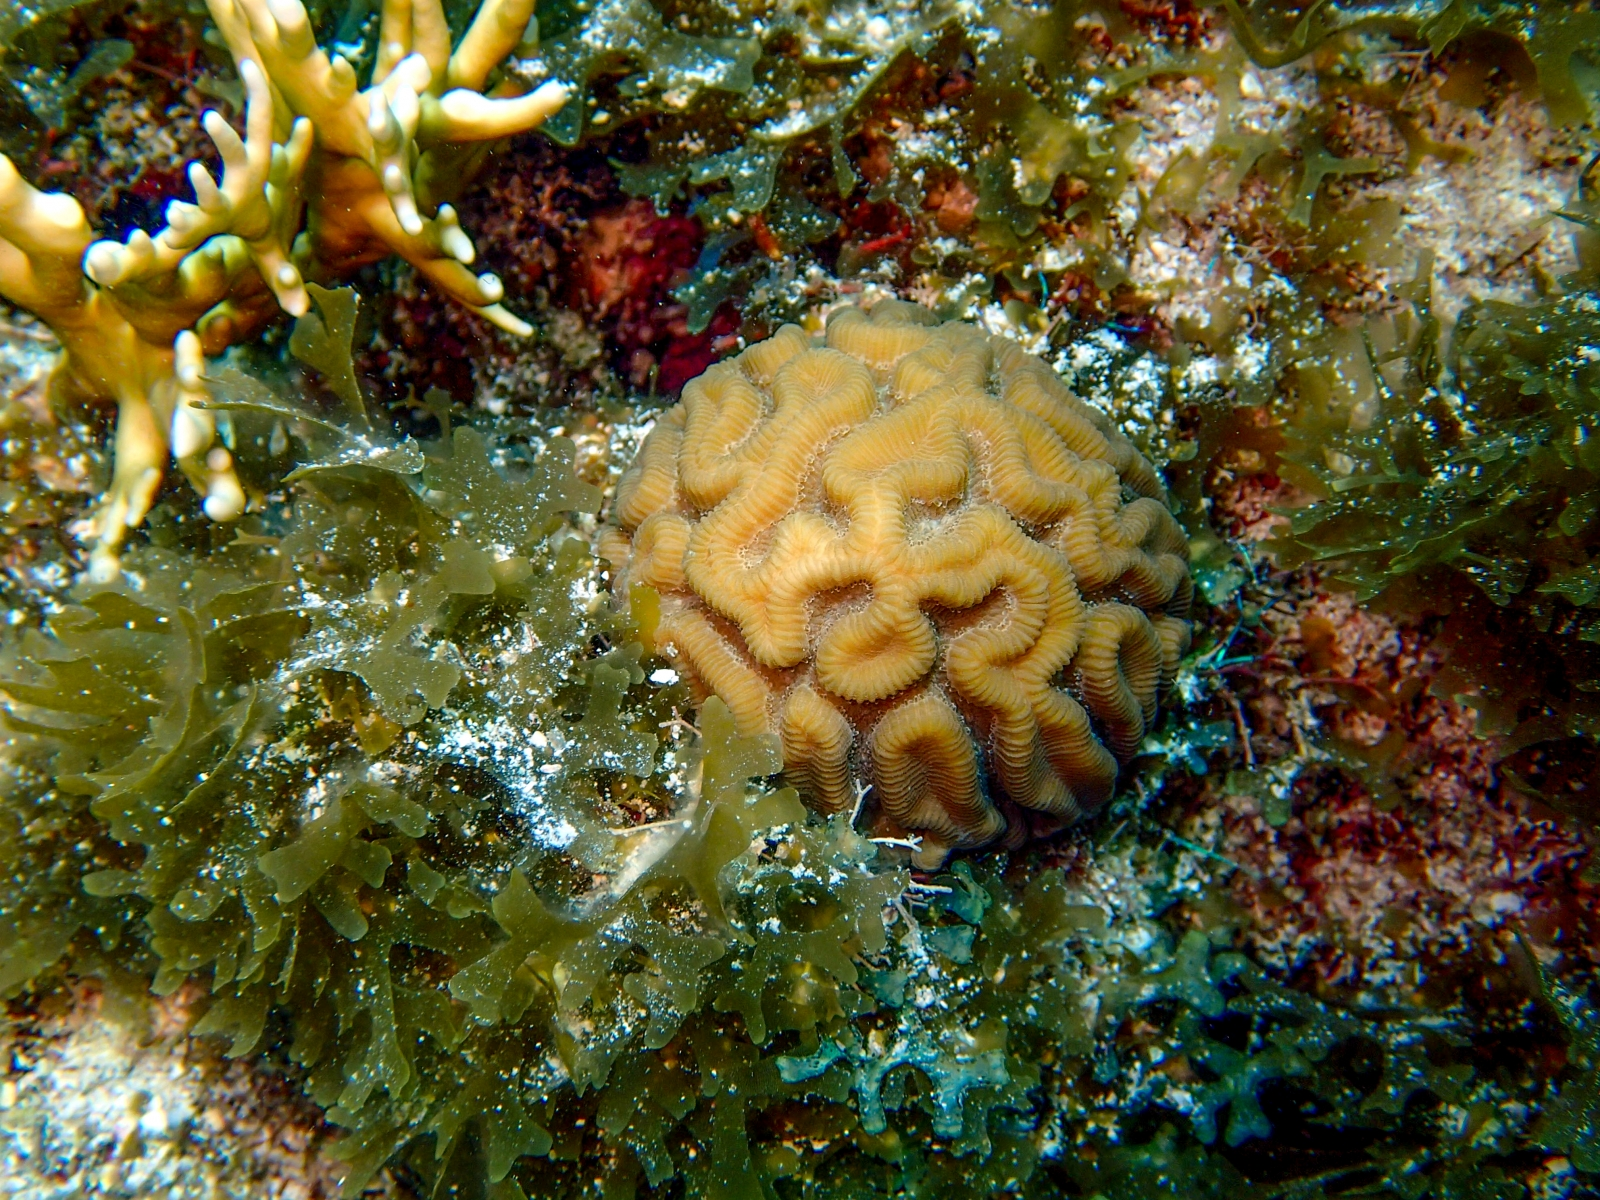 Corals are dying worldwide to triple threat of overfishing ...